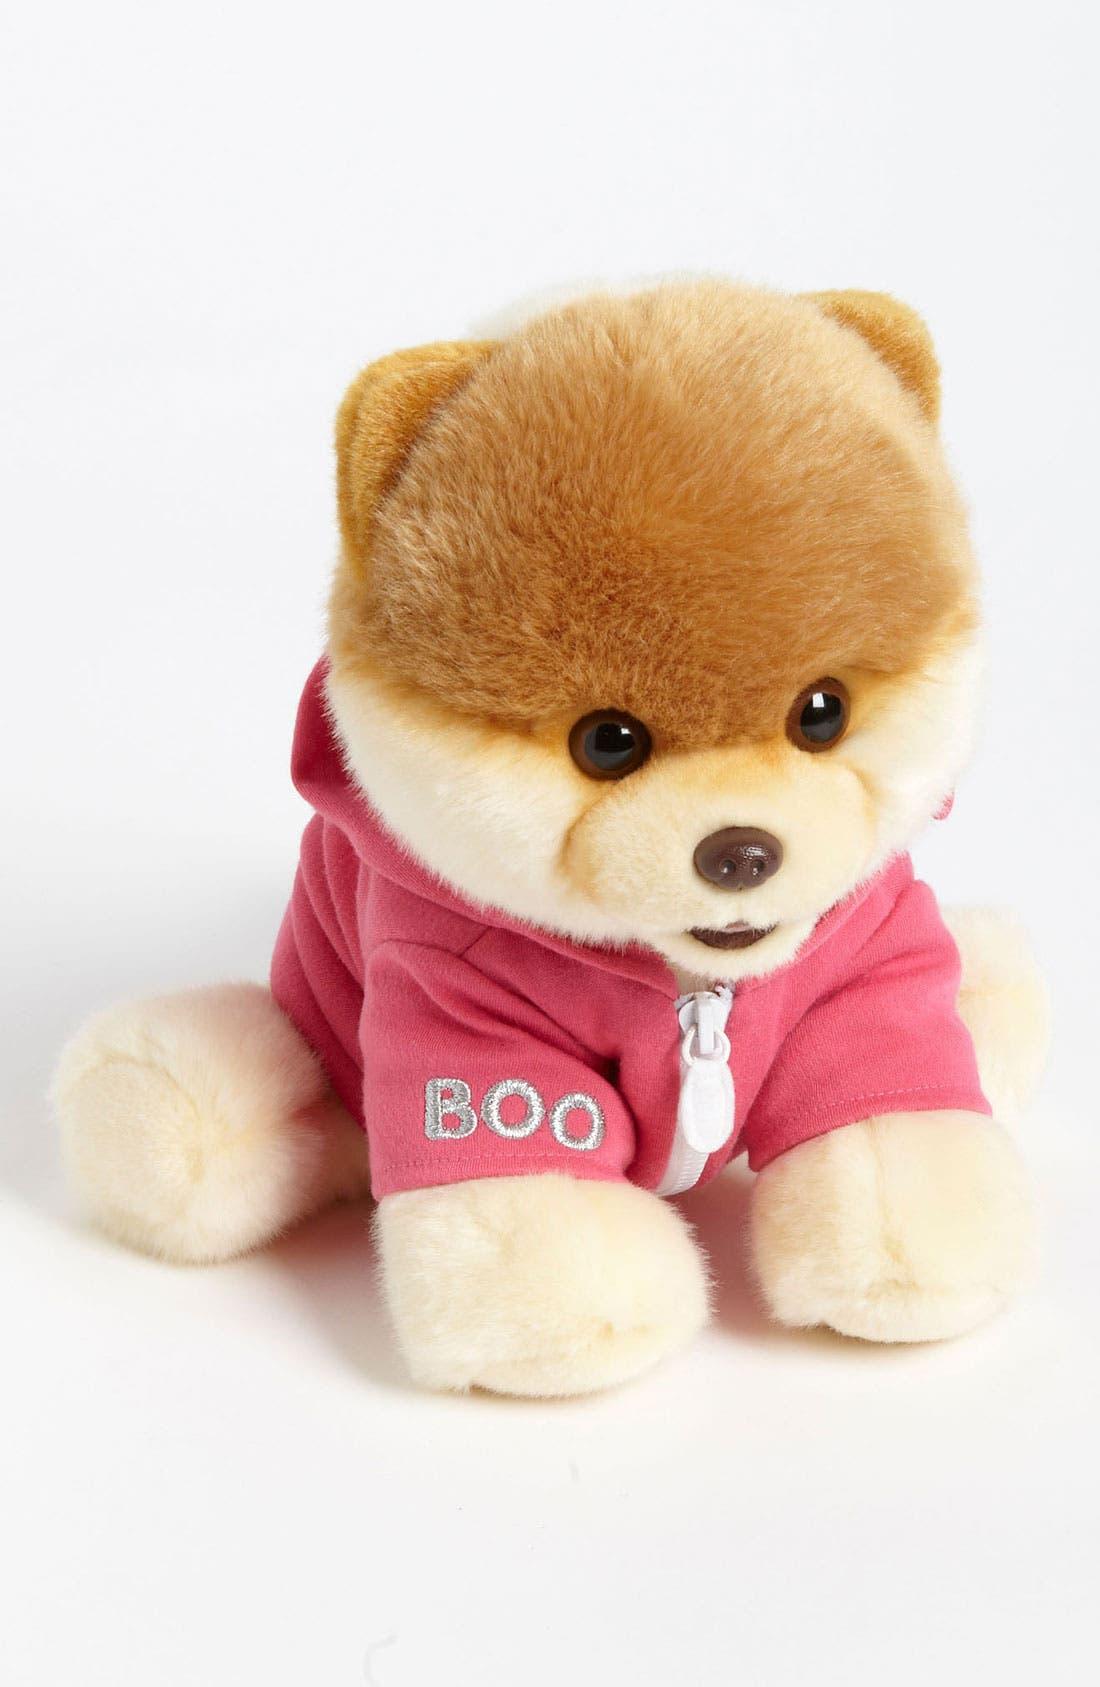 Alternate Image 1 Selected - Gund 'Boo - World's Cutest Dog' Life-Size Stuffed Animal